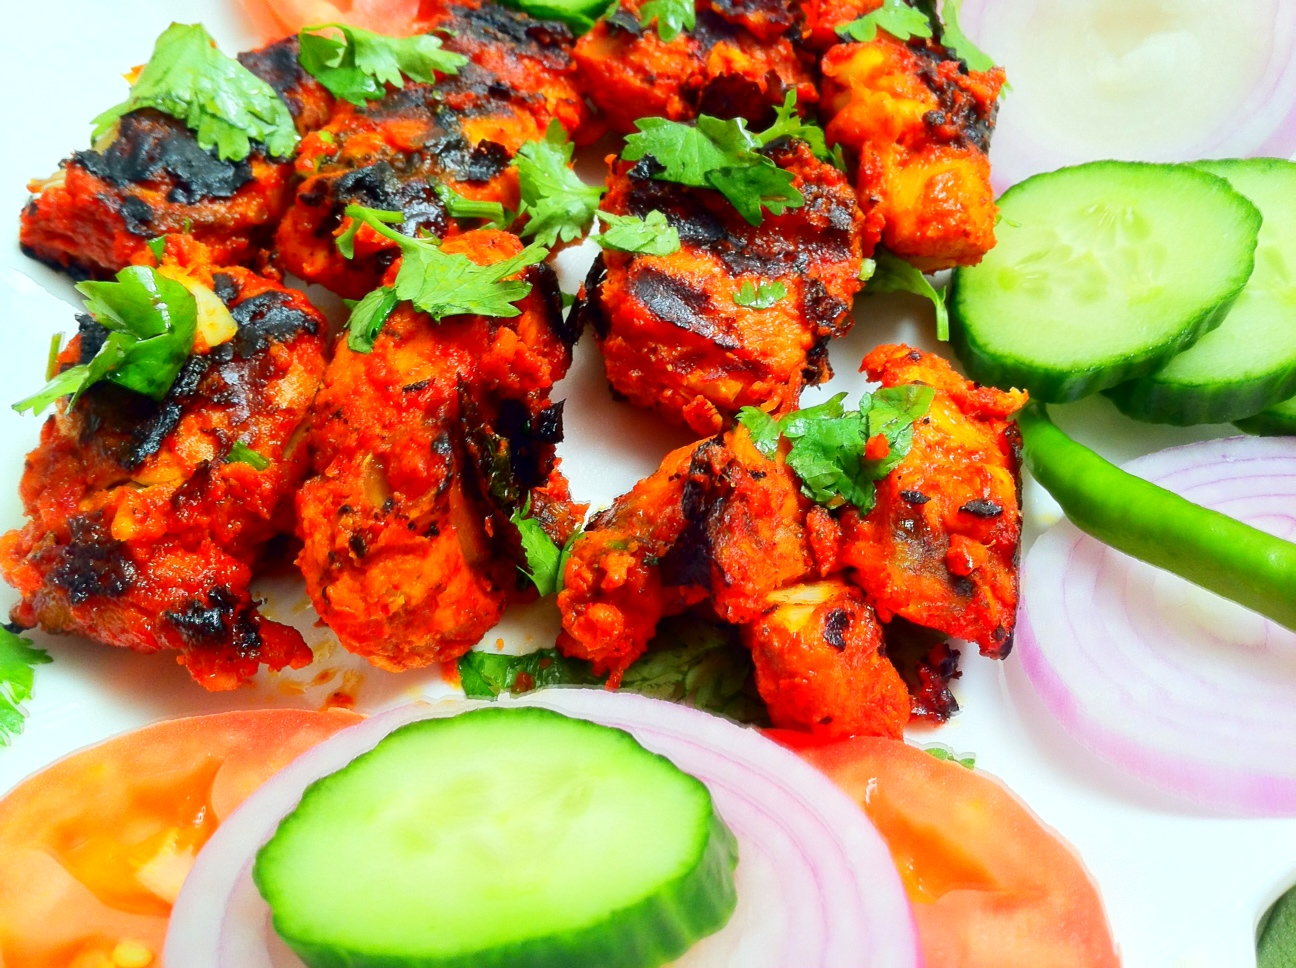 fish tikka boneless fish pieces in grill oven spicy